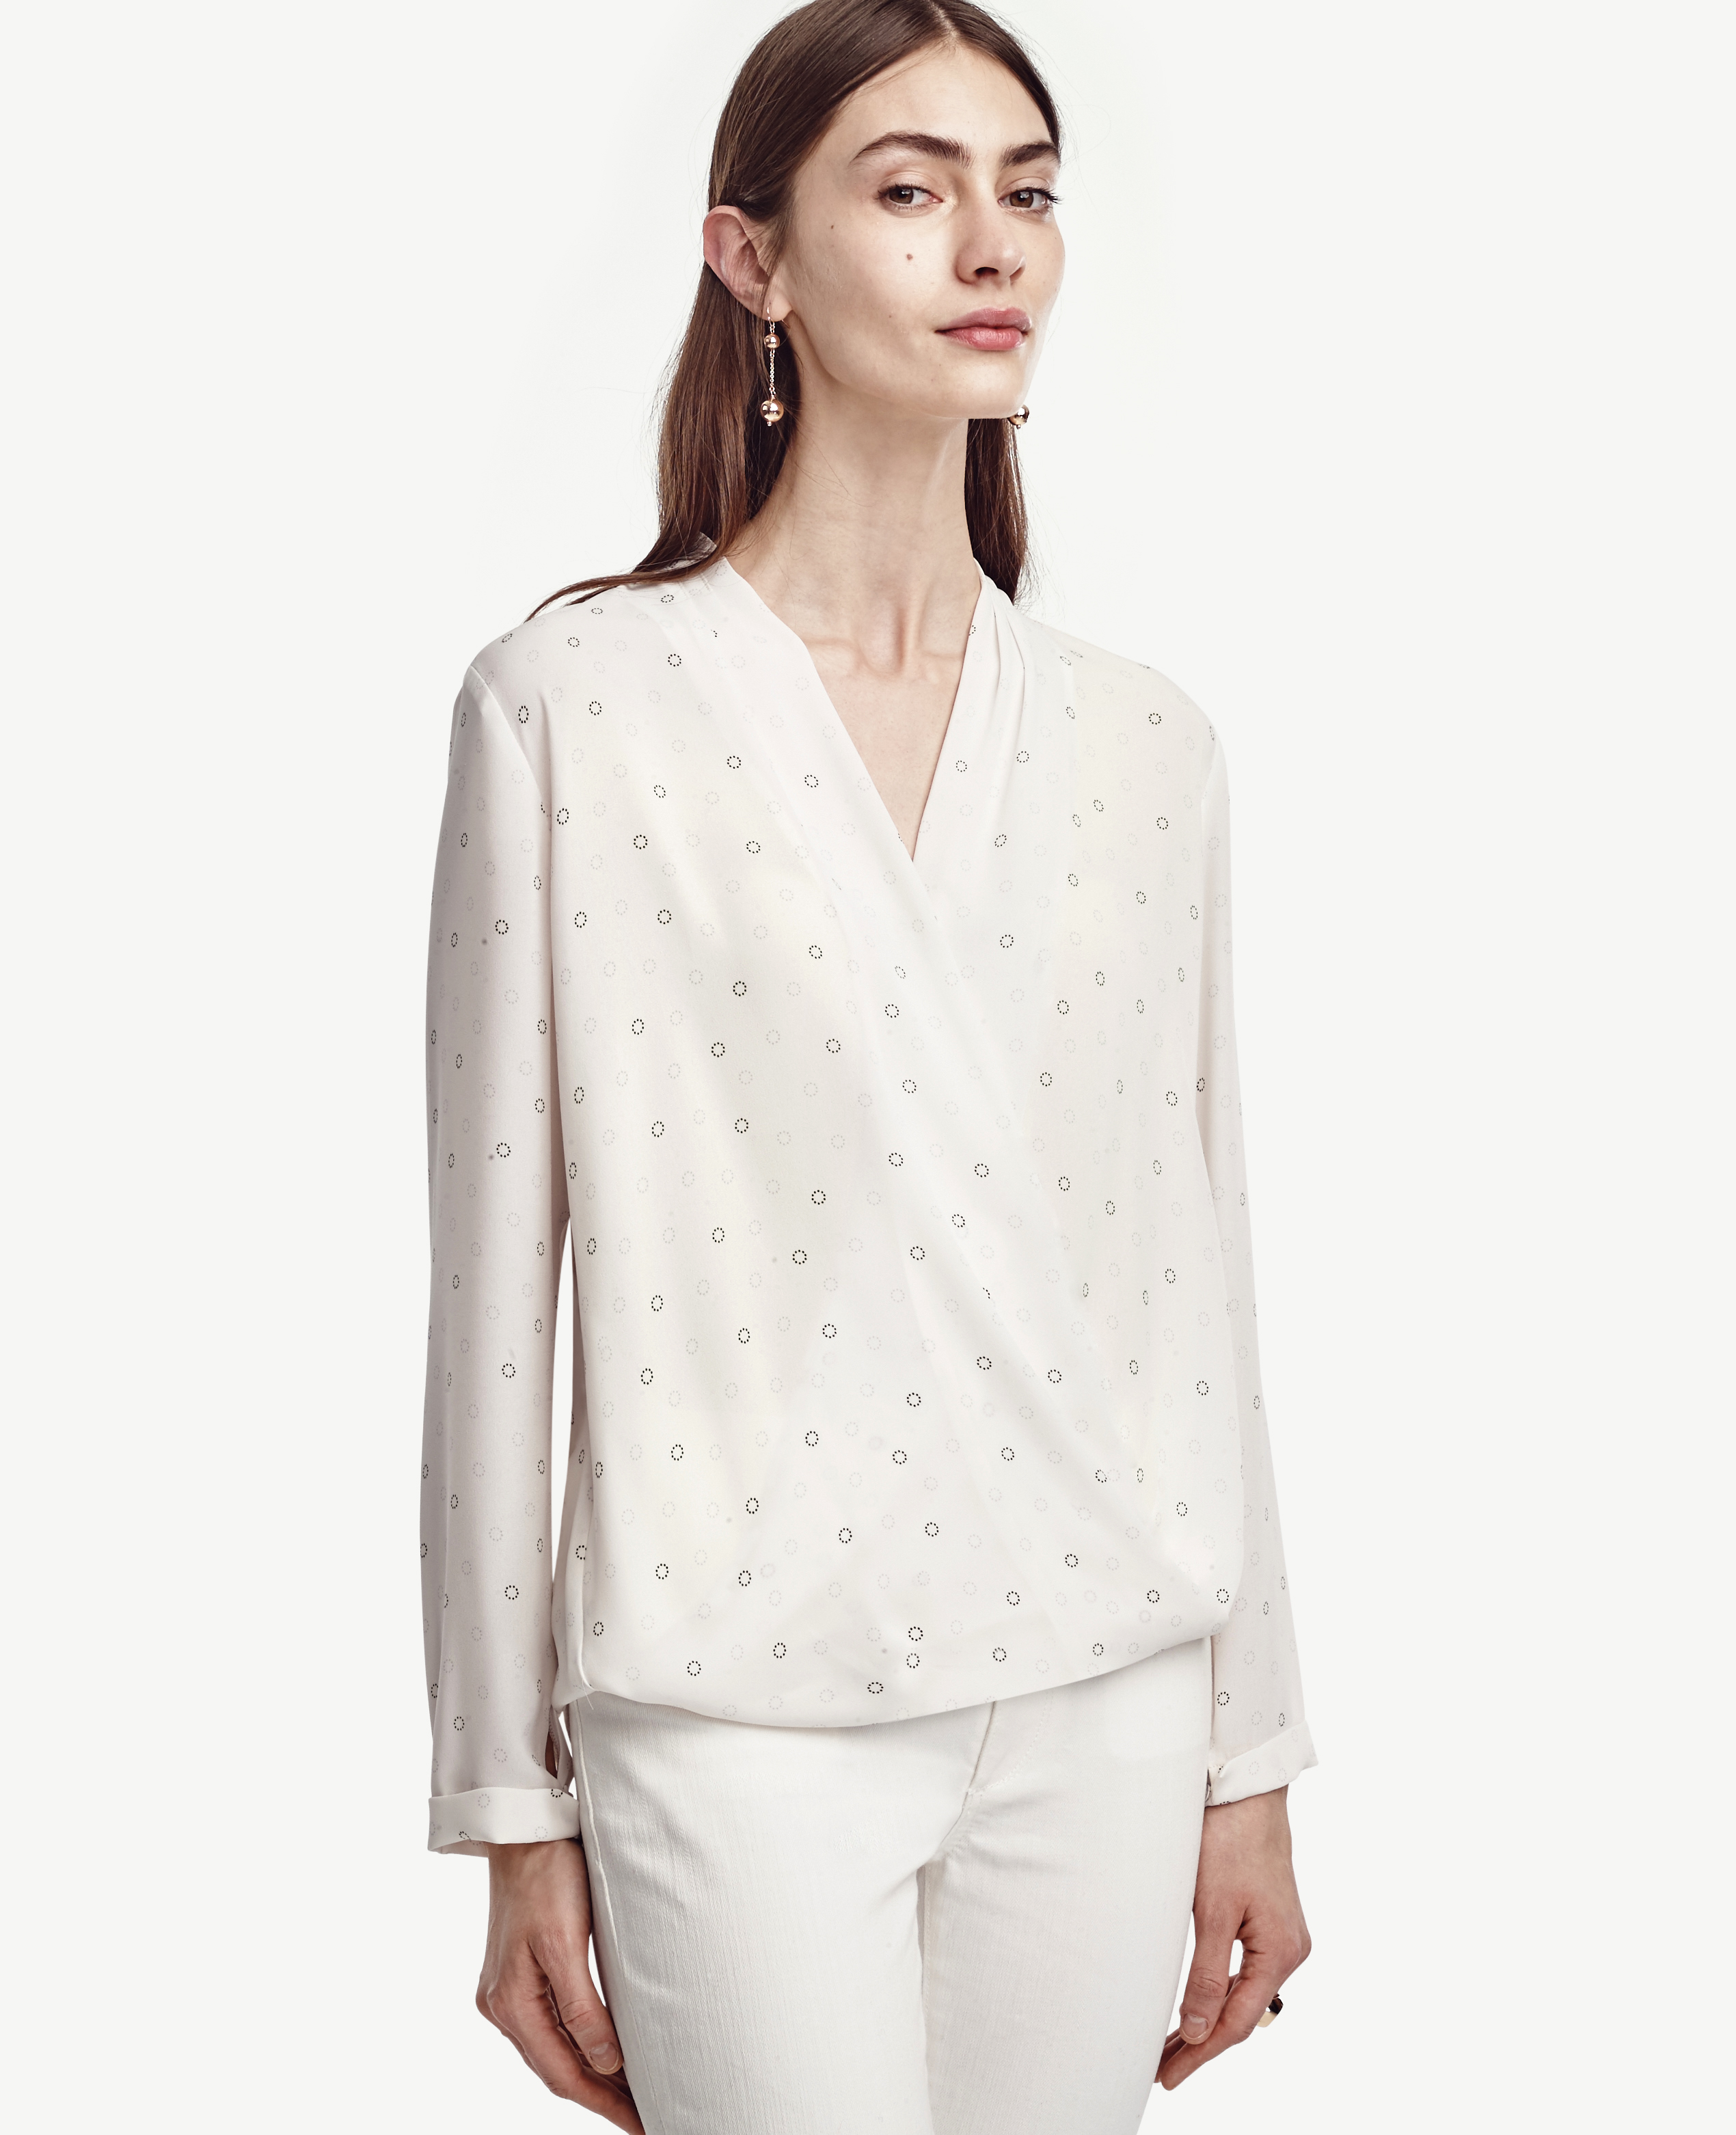 Ann taylor Ring Wrap Blouse in White | Lyst